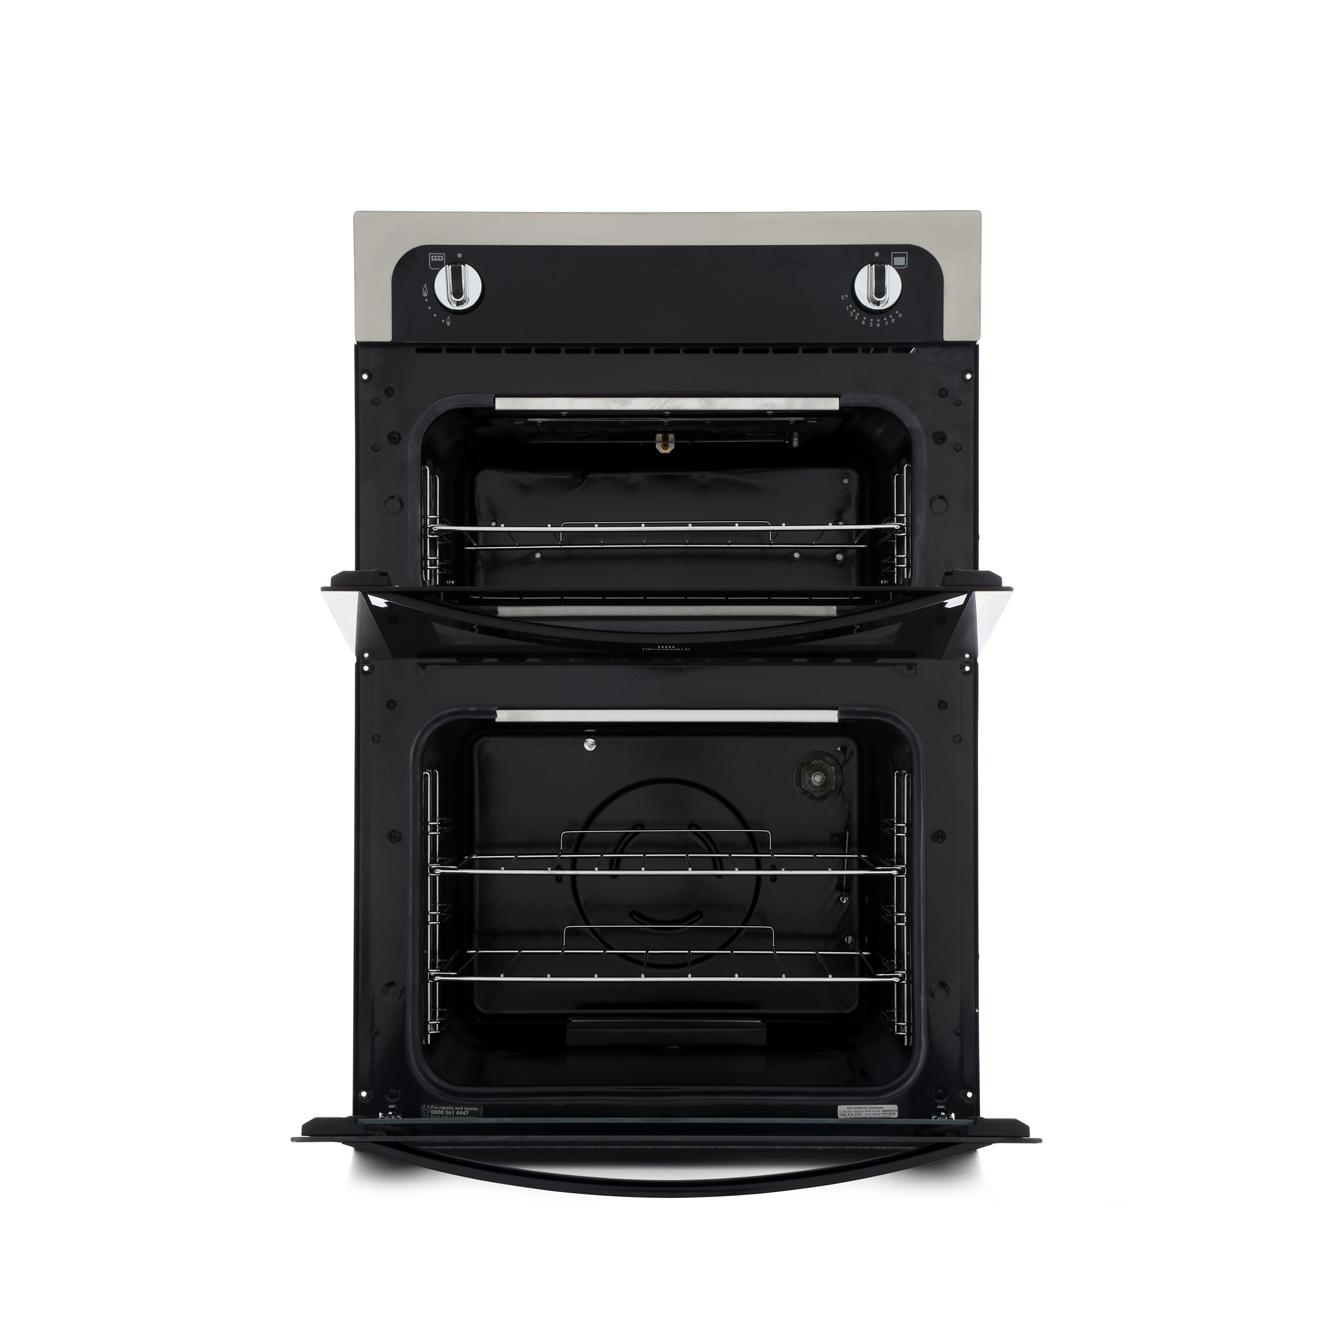 buy new world 901g stainless steel built in gas oven. Black Bedroom Furniture Sets. Home Design Ideas